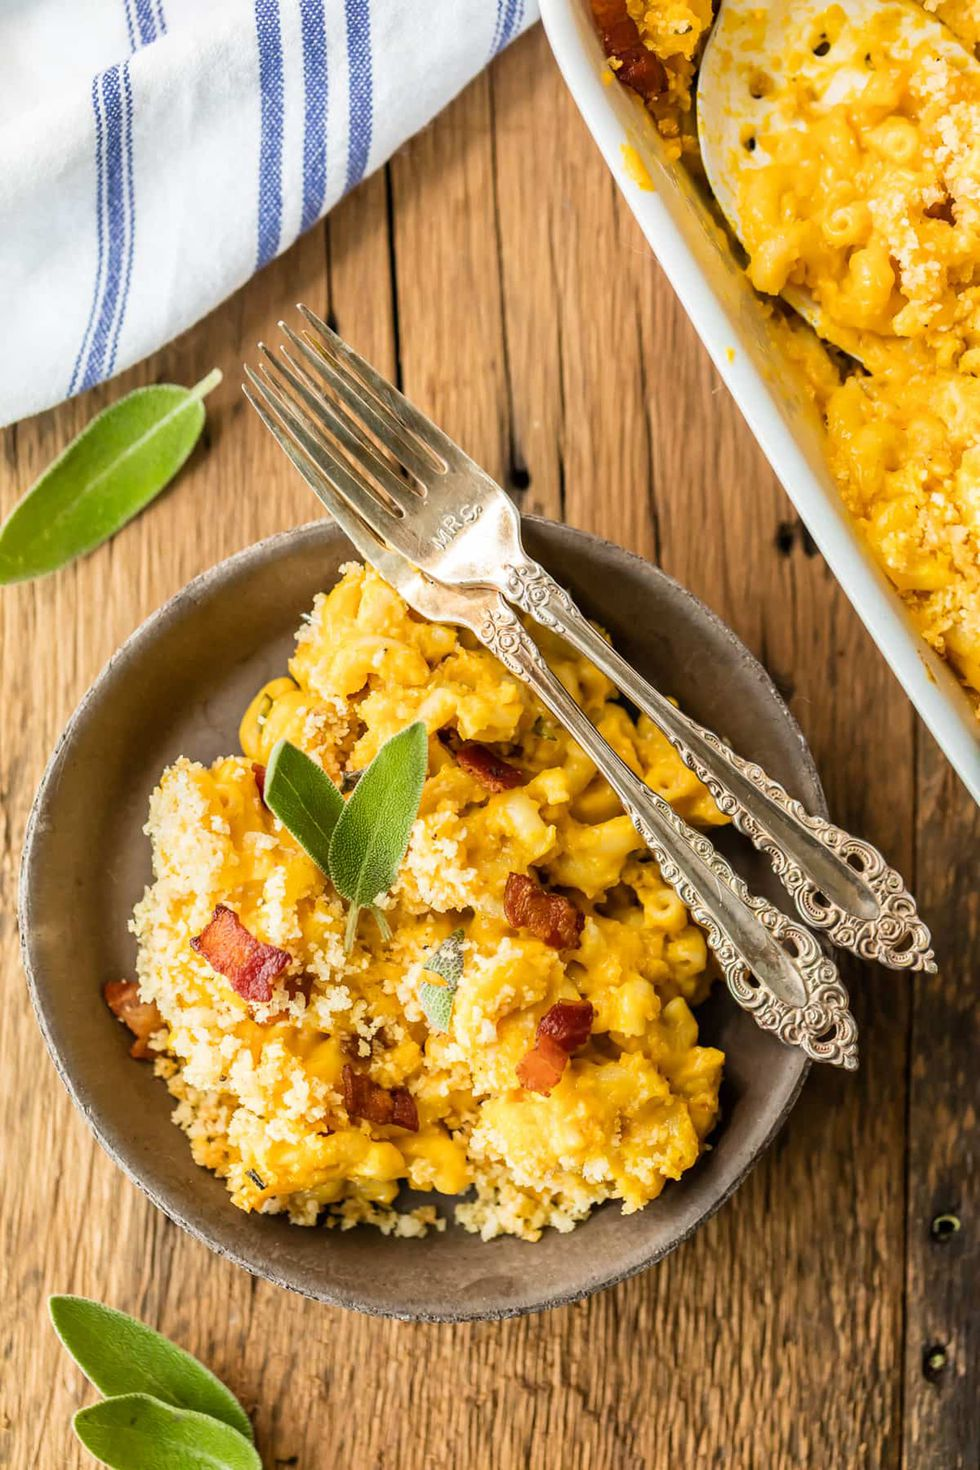 pumpkin-recipes-mac-and-cheese-1530050492.jpg